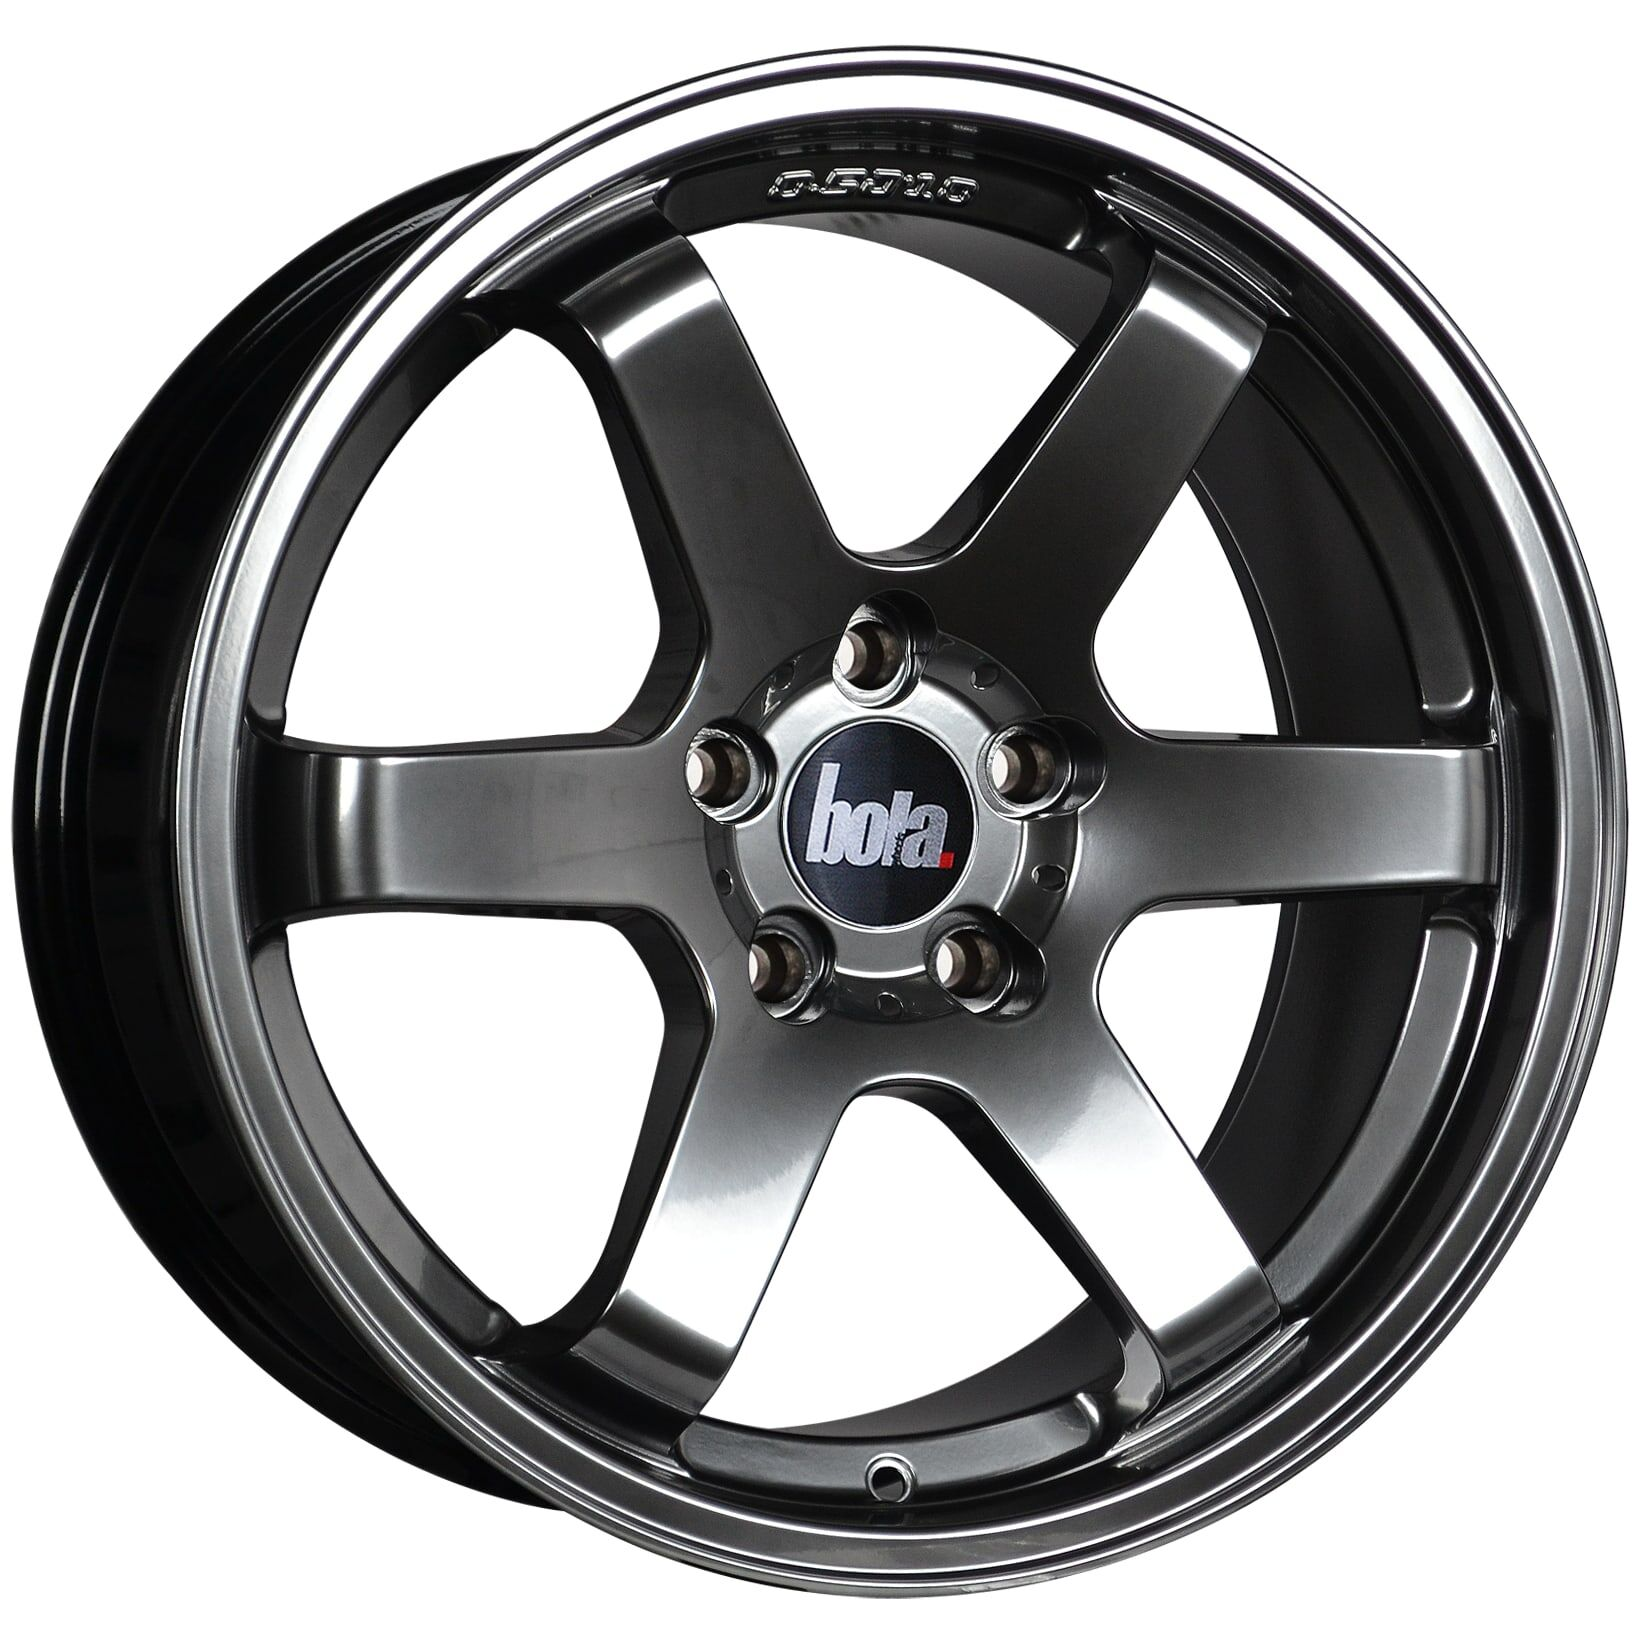 "18"" BOLA B1 Wheels - Hyper Black - VW / Audi / Mercedes - 5x112"